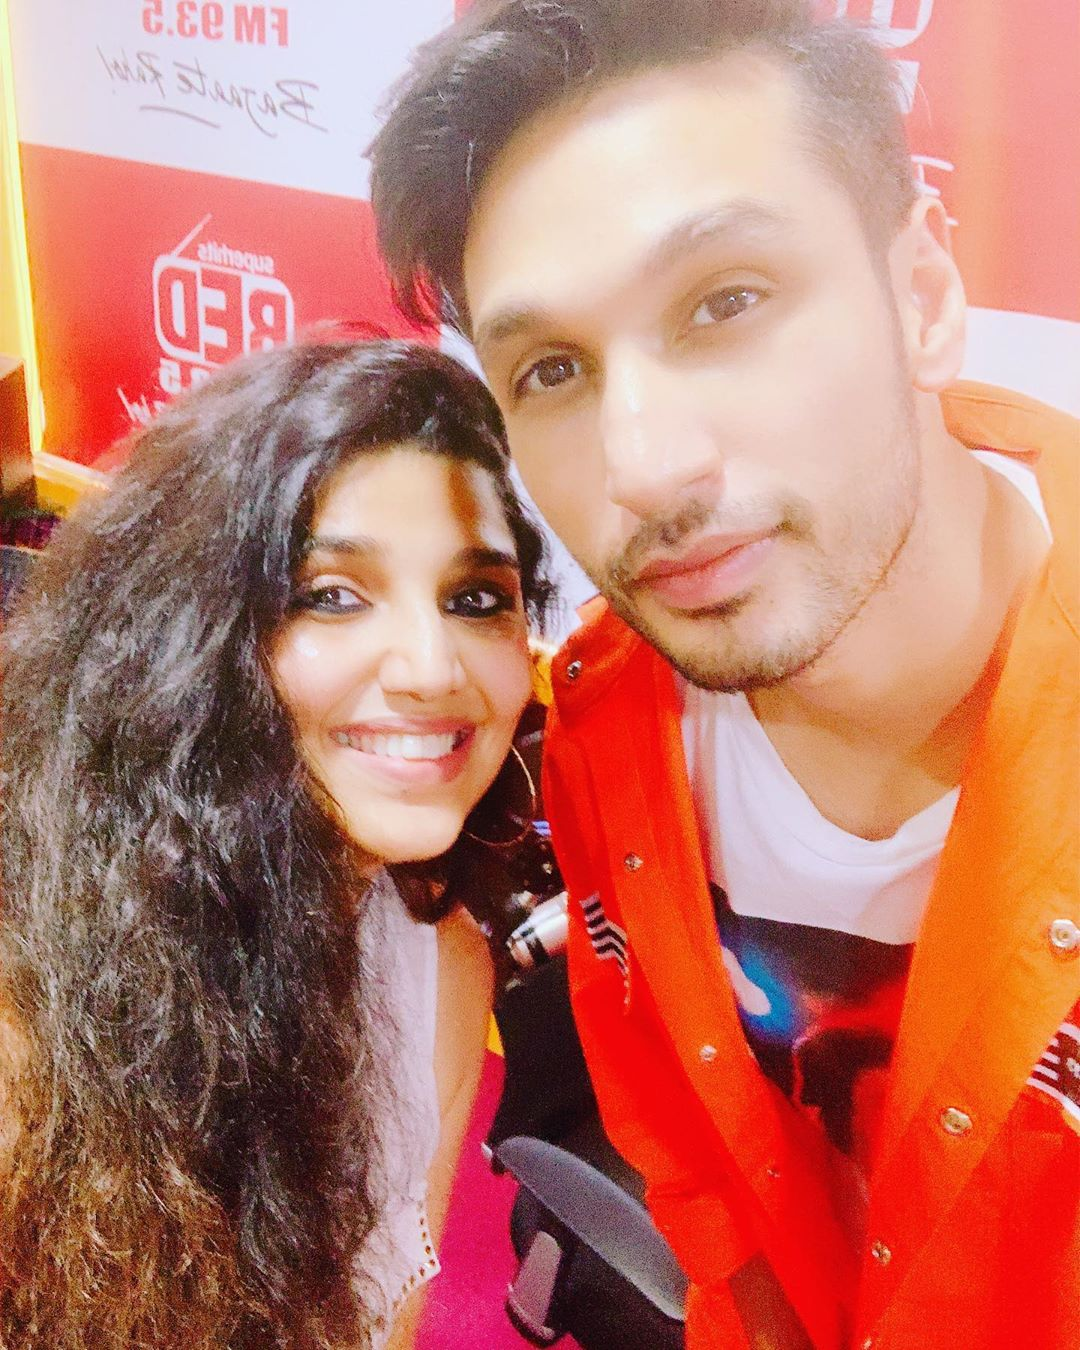 Meet the cutie pie @arjunkanungo @redfmindia #RedIndiesstar #DevakiKaCarobar catch it on #RedFM YouTube and #Rjdevaki #Fblive